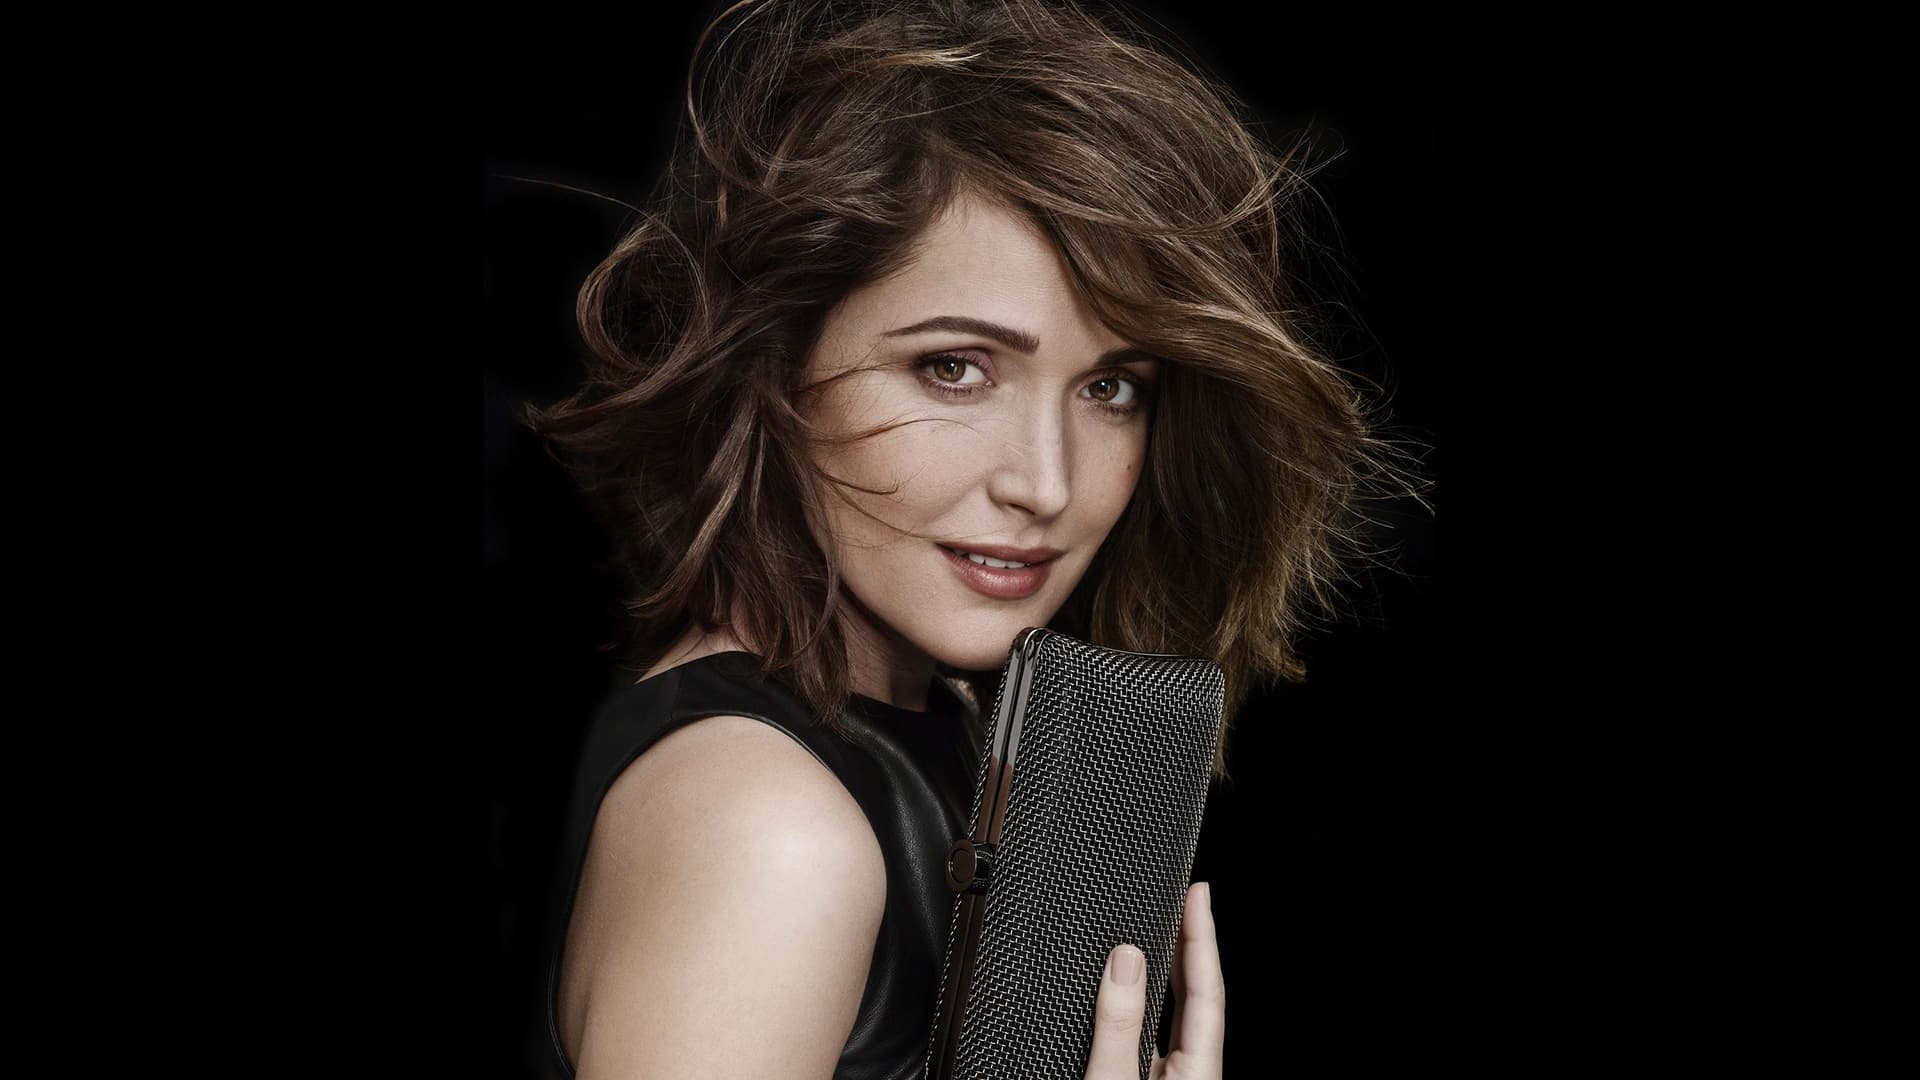 17+ Rose Byrne wallpapers HD High Quality Download